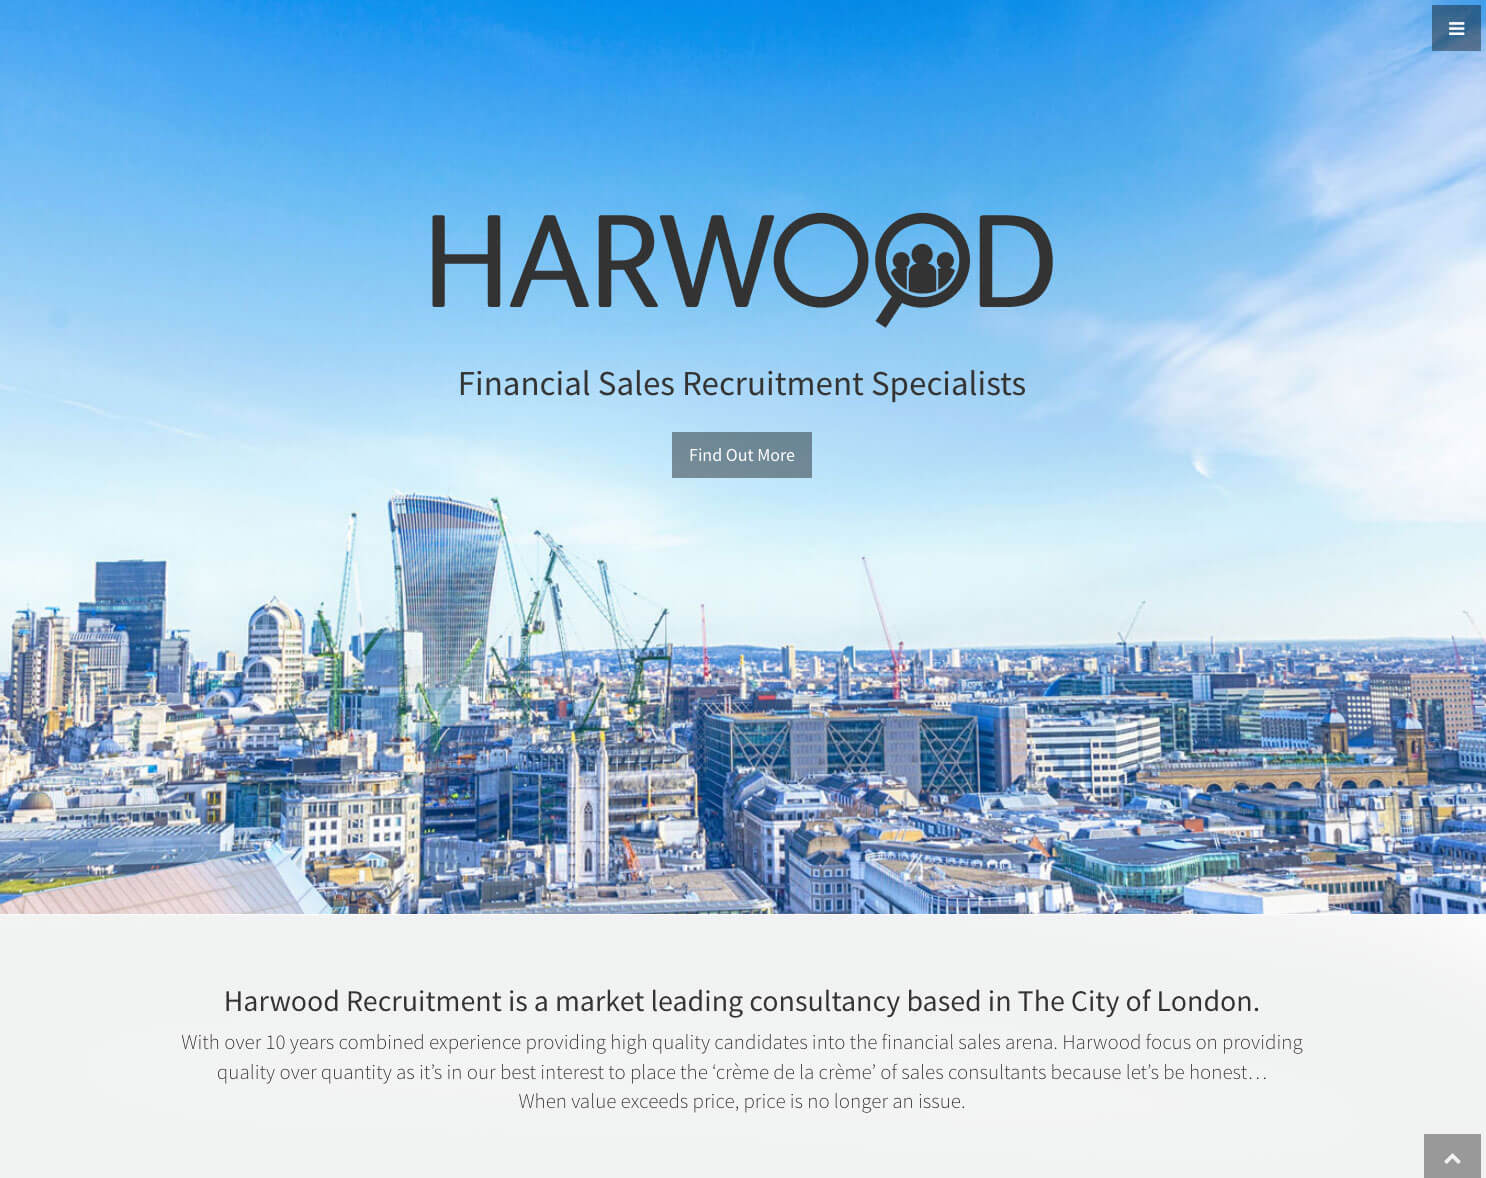 harwood-recruitment-.jpg